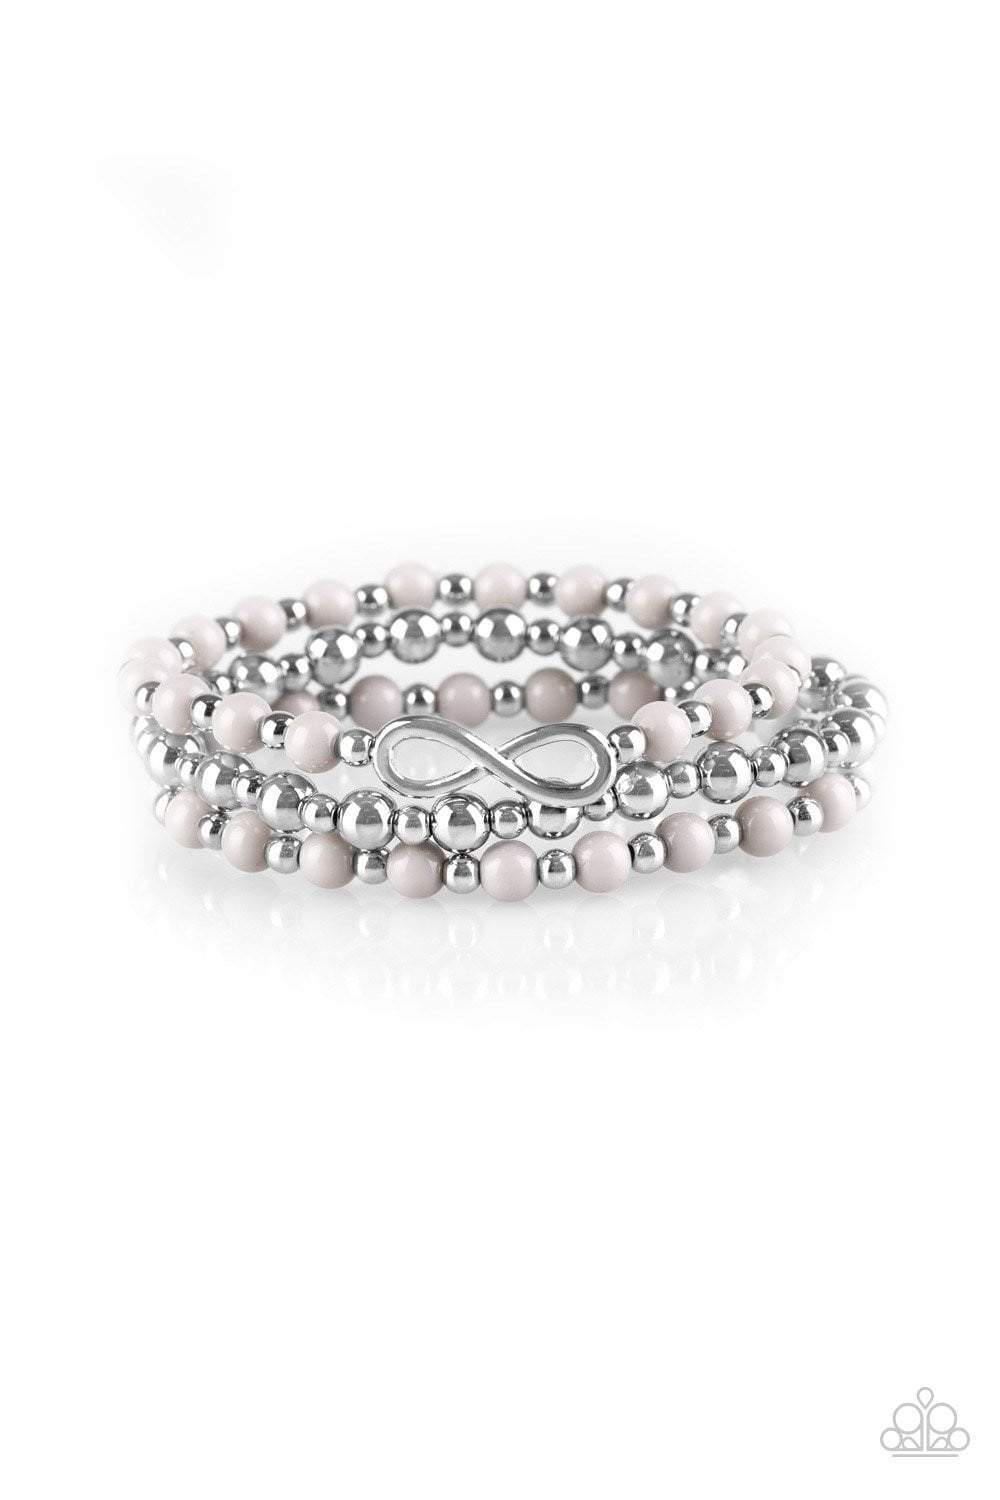 Paparazzi Immeasurably Infinite - Gray and Silver Bead Silver Infinity Charm Layered Bracelet - Bling It On Online